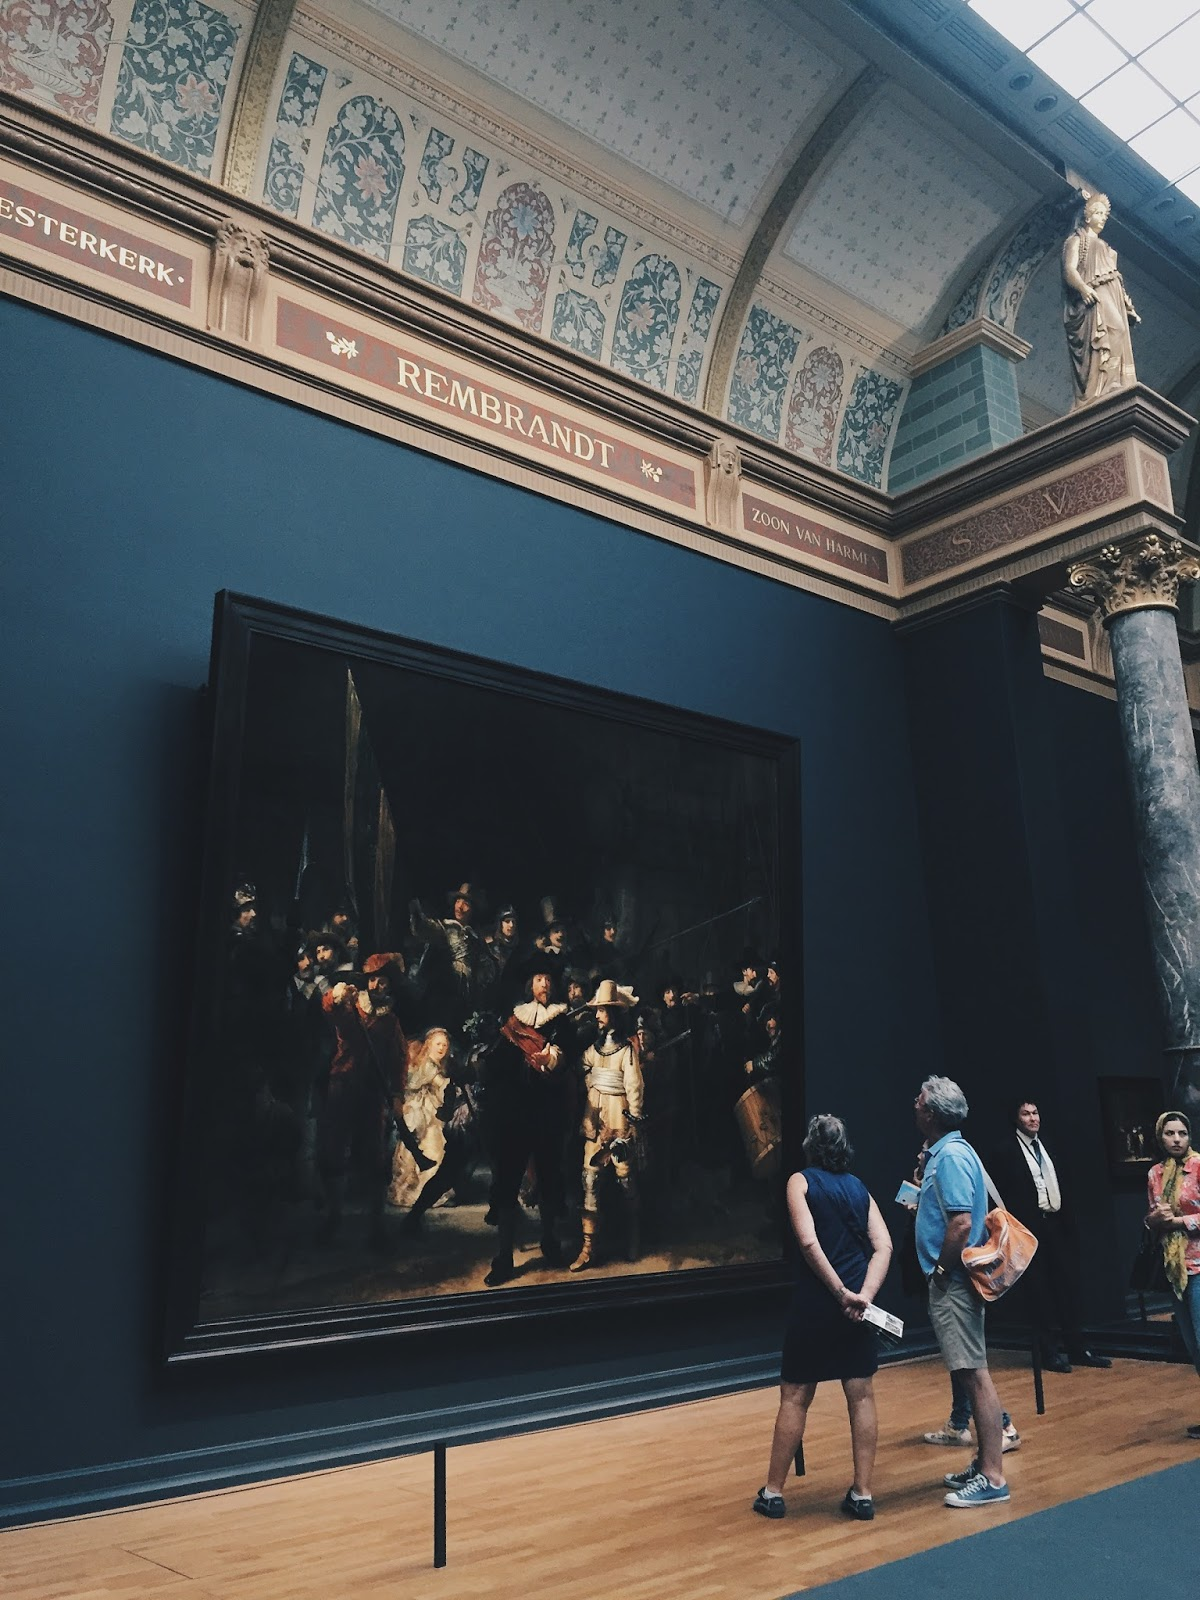 Rijksmuseum amsterdam - the Night Watch - Rembrandt van Rijn